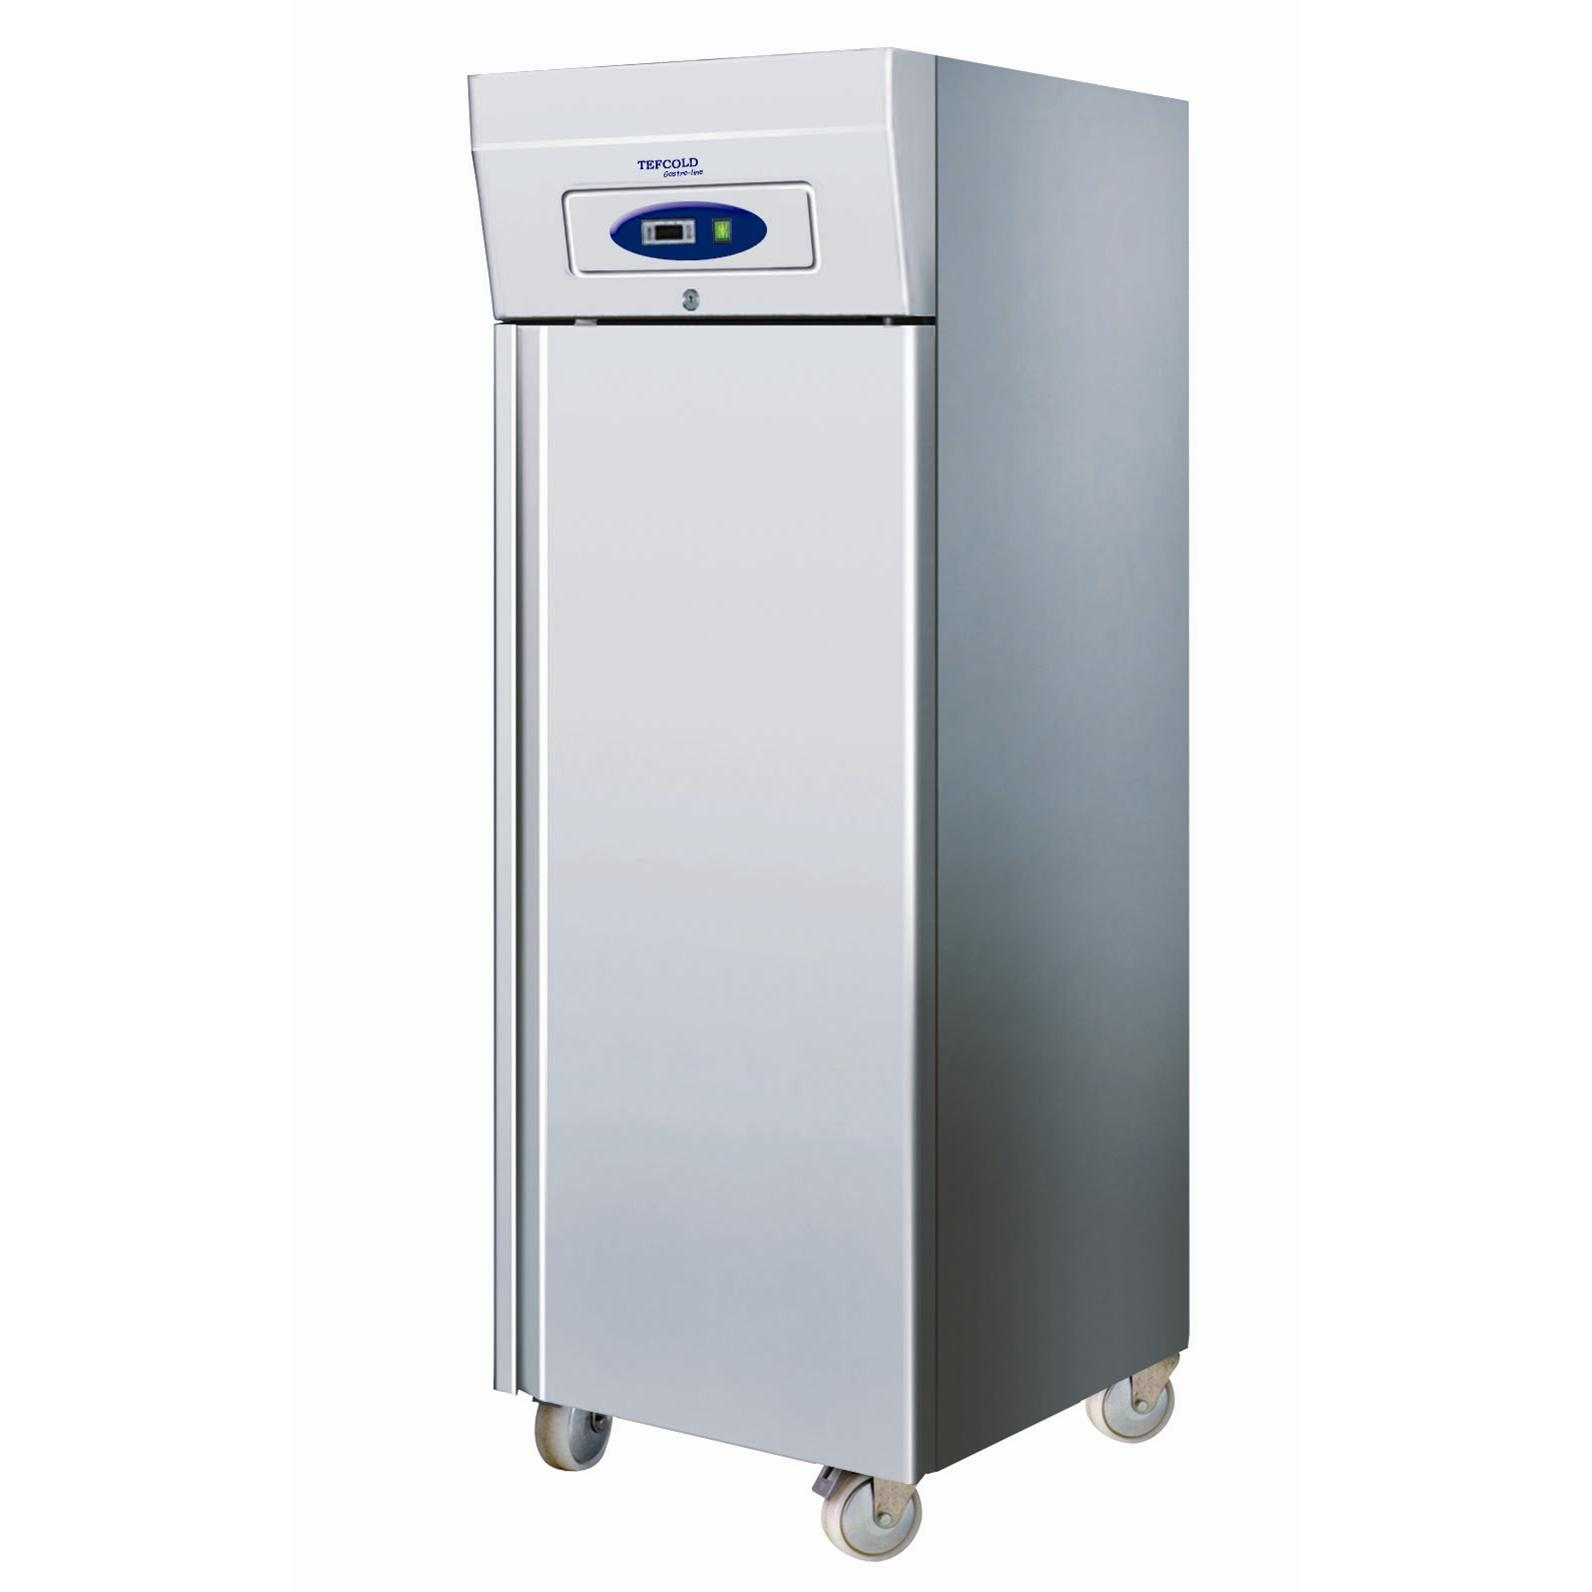 Gastronorm Upright Freezer